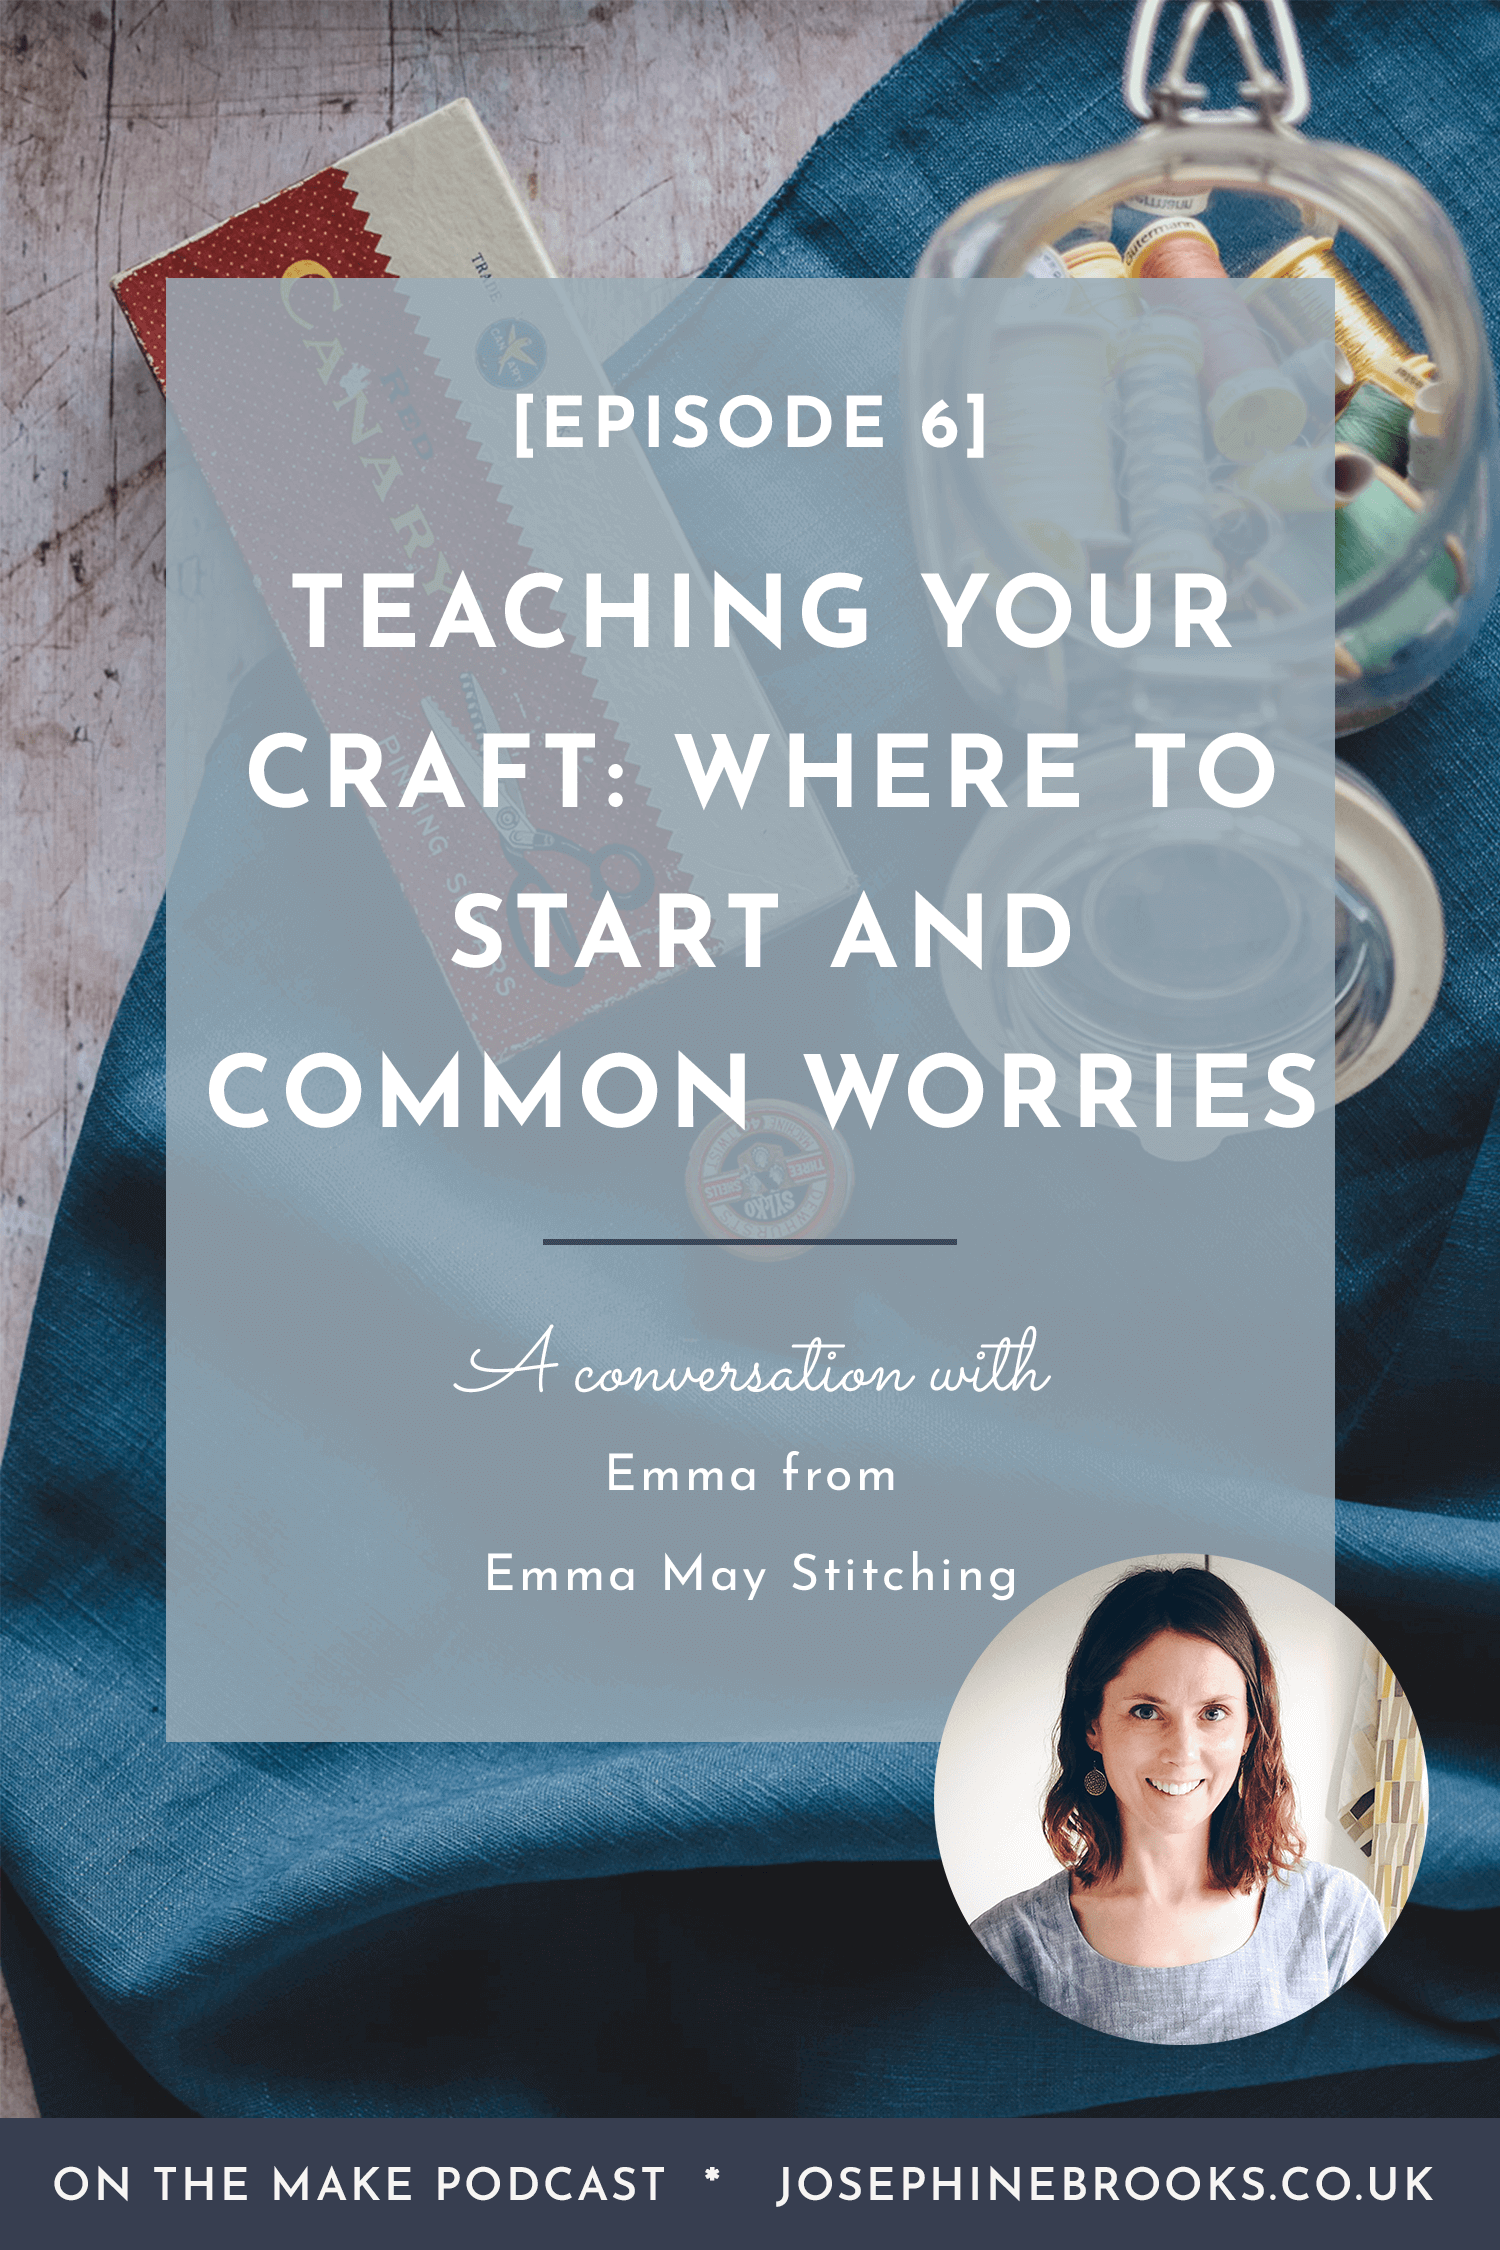 On The Make episode 6 with Emma May Stitching on how to start teaching your craft: Where to start and addressing common worries, how to teach workshops, how to start teaching craft